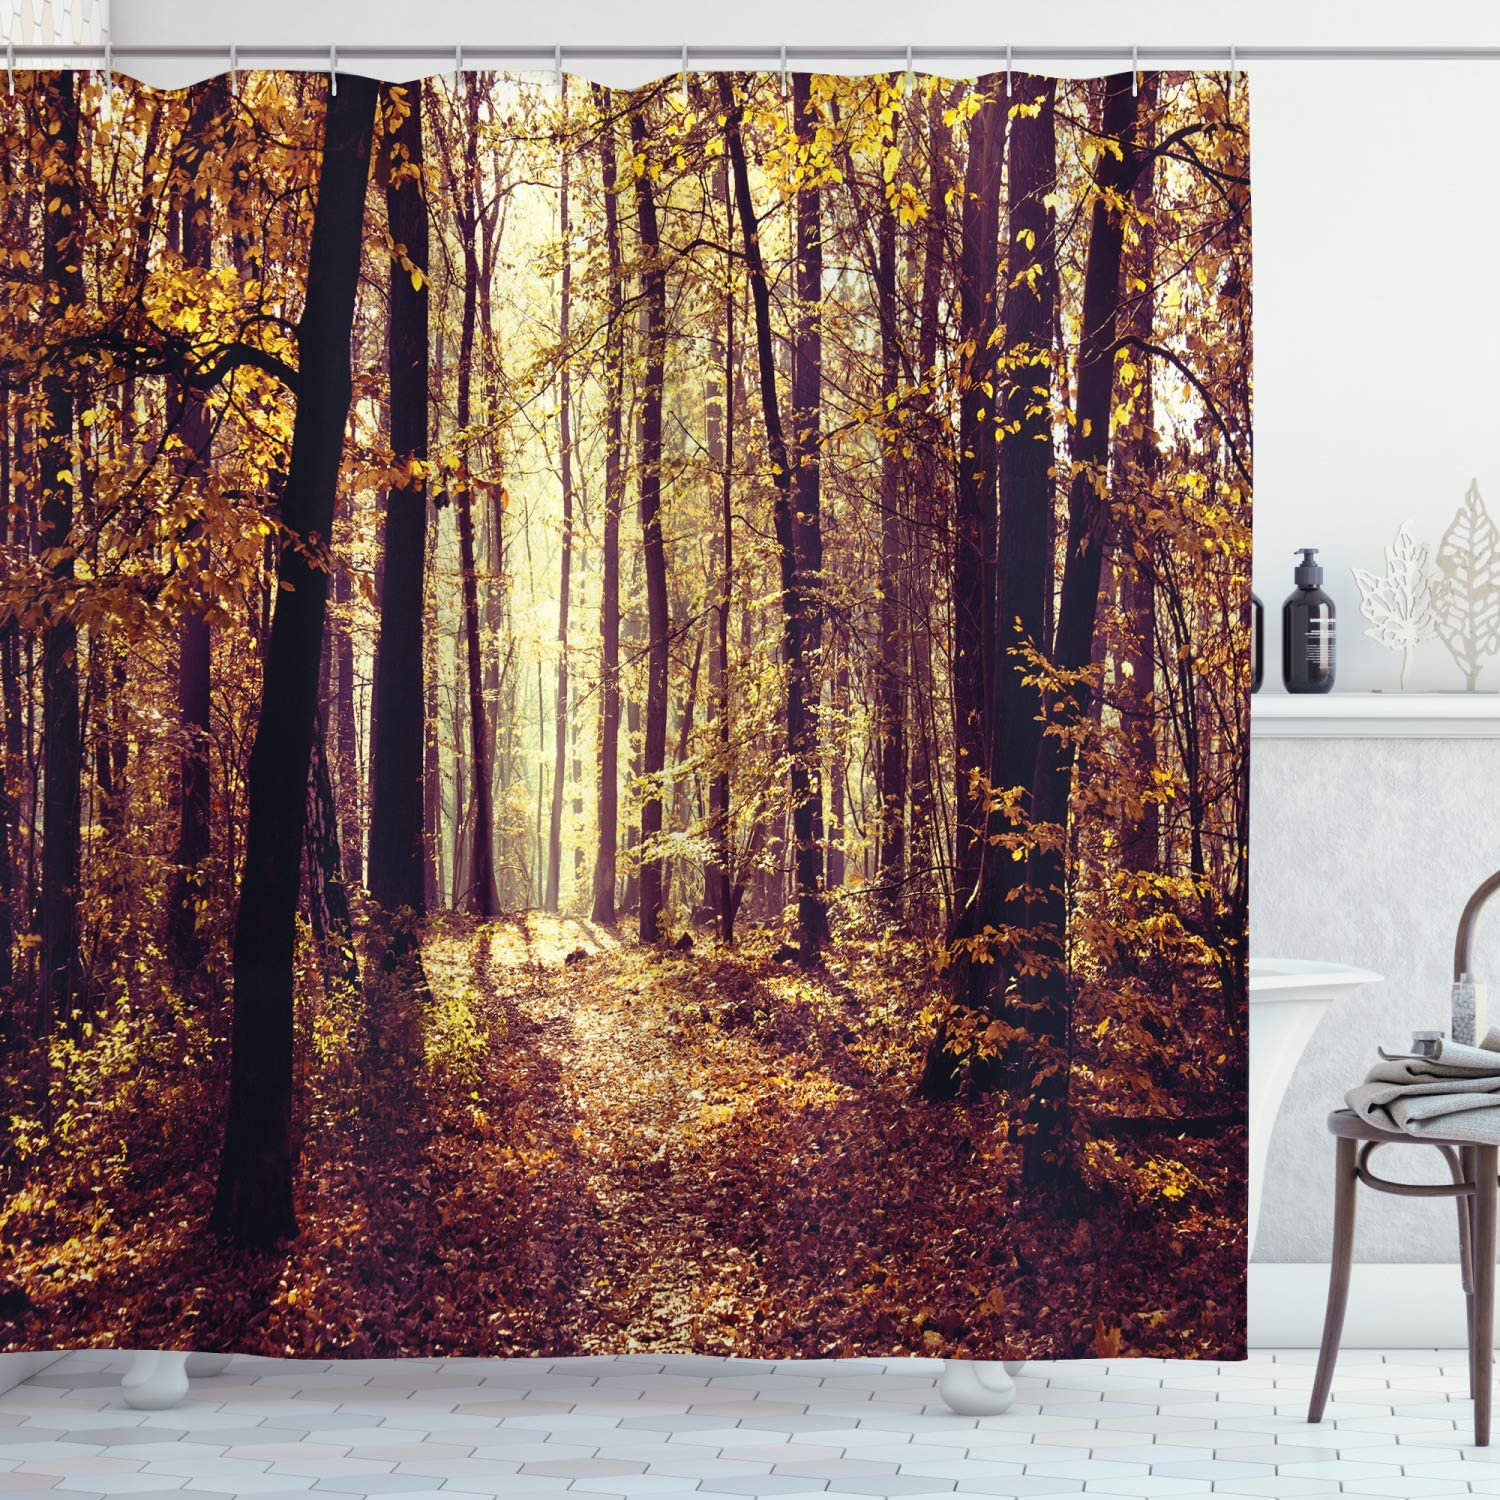 Ambesonne Forest Shower Curtain, Mysterious Atmosphere Misty Woods Tree Nature Landscape Image, Cloth Fabric Bathroom Decor Set with Hooks, 70